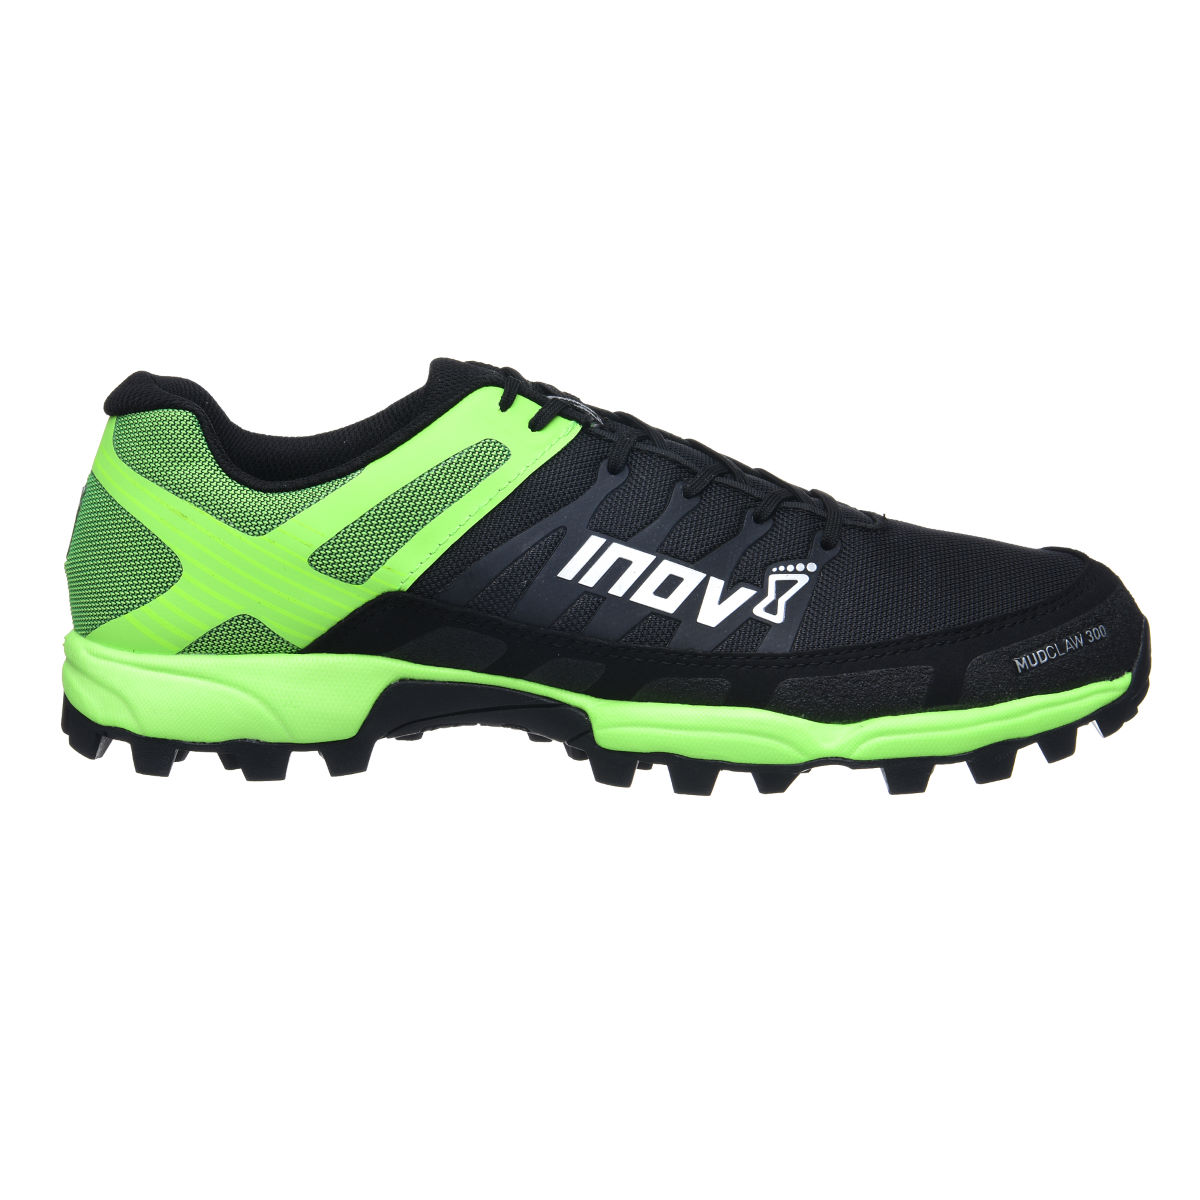 Inov-8 Mudclaw 300 Shoes - Zapatillas de trail running